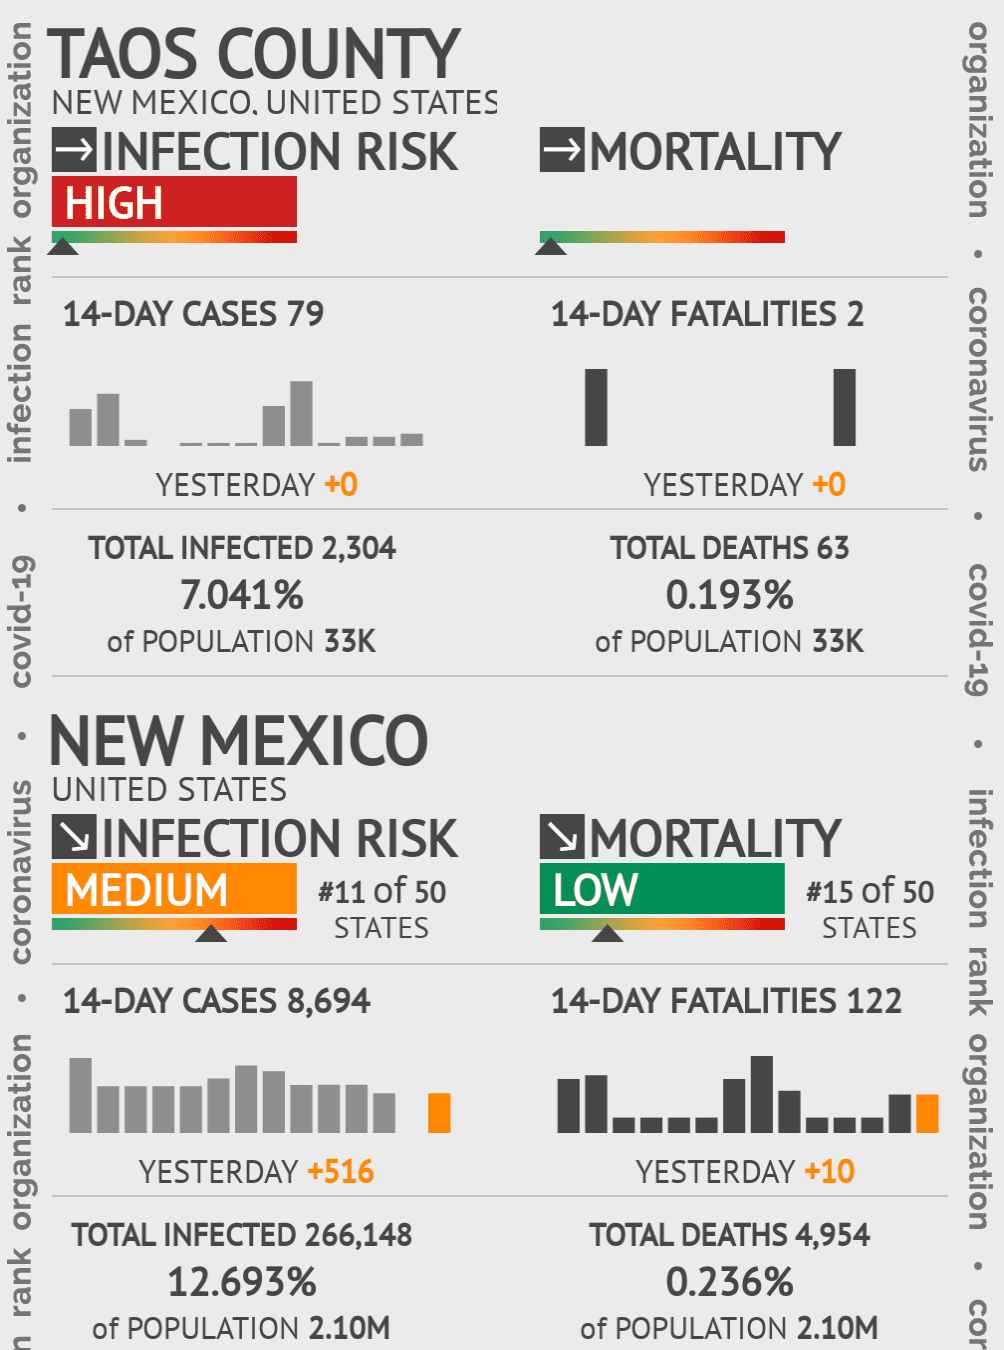 Taos County Coronavirus Covid-19 Risk of Infection on July 24, 2021